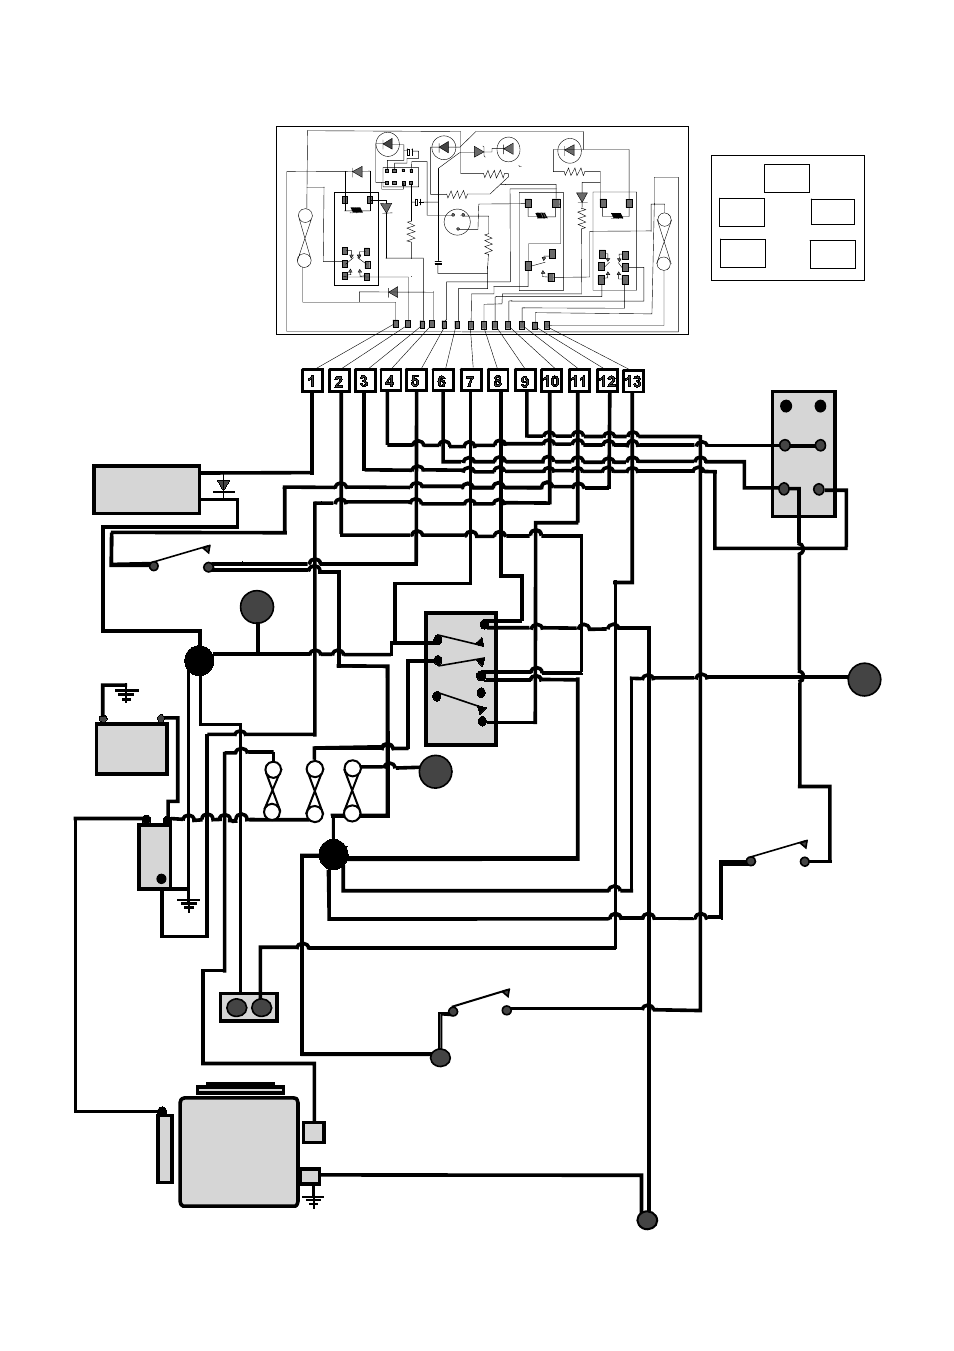 Troy Bilt Mtd Wiring Diagram 2001 Trusted Mower Westwood Garden Tractor Circuit Connection U2022 Deck